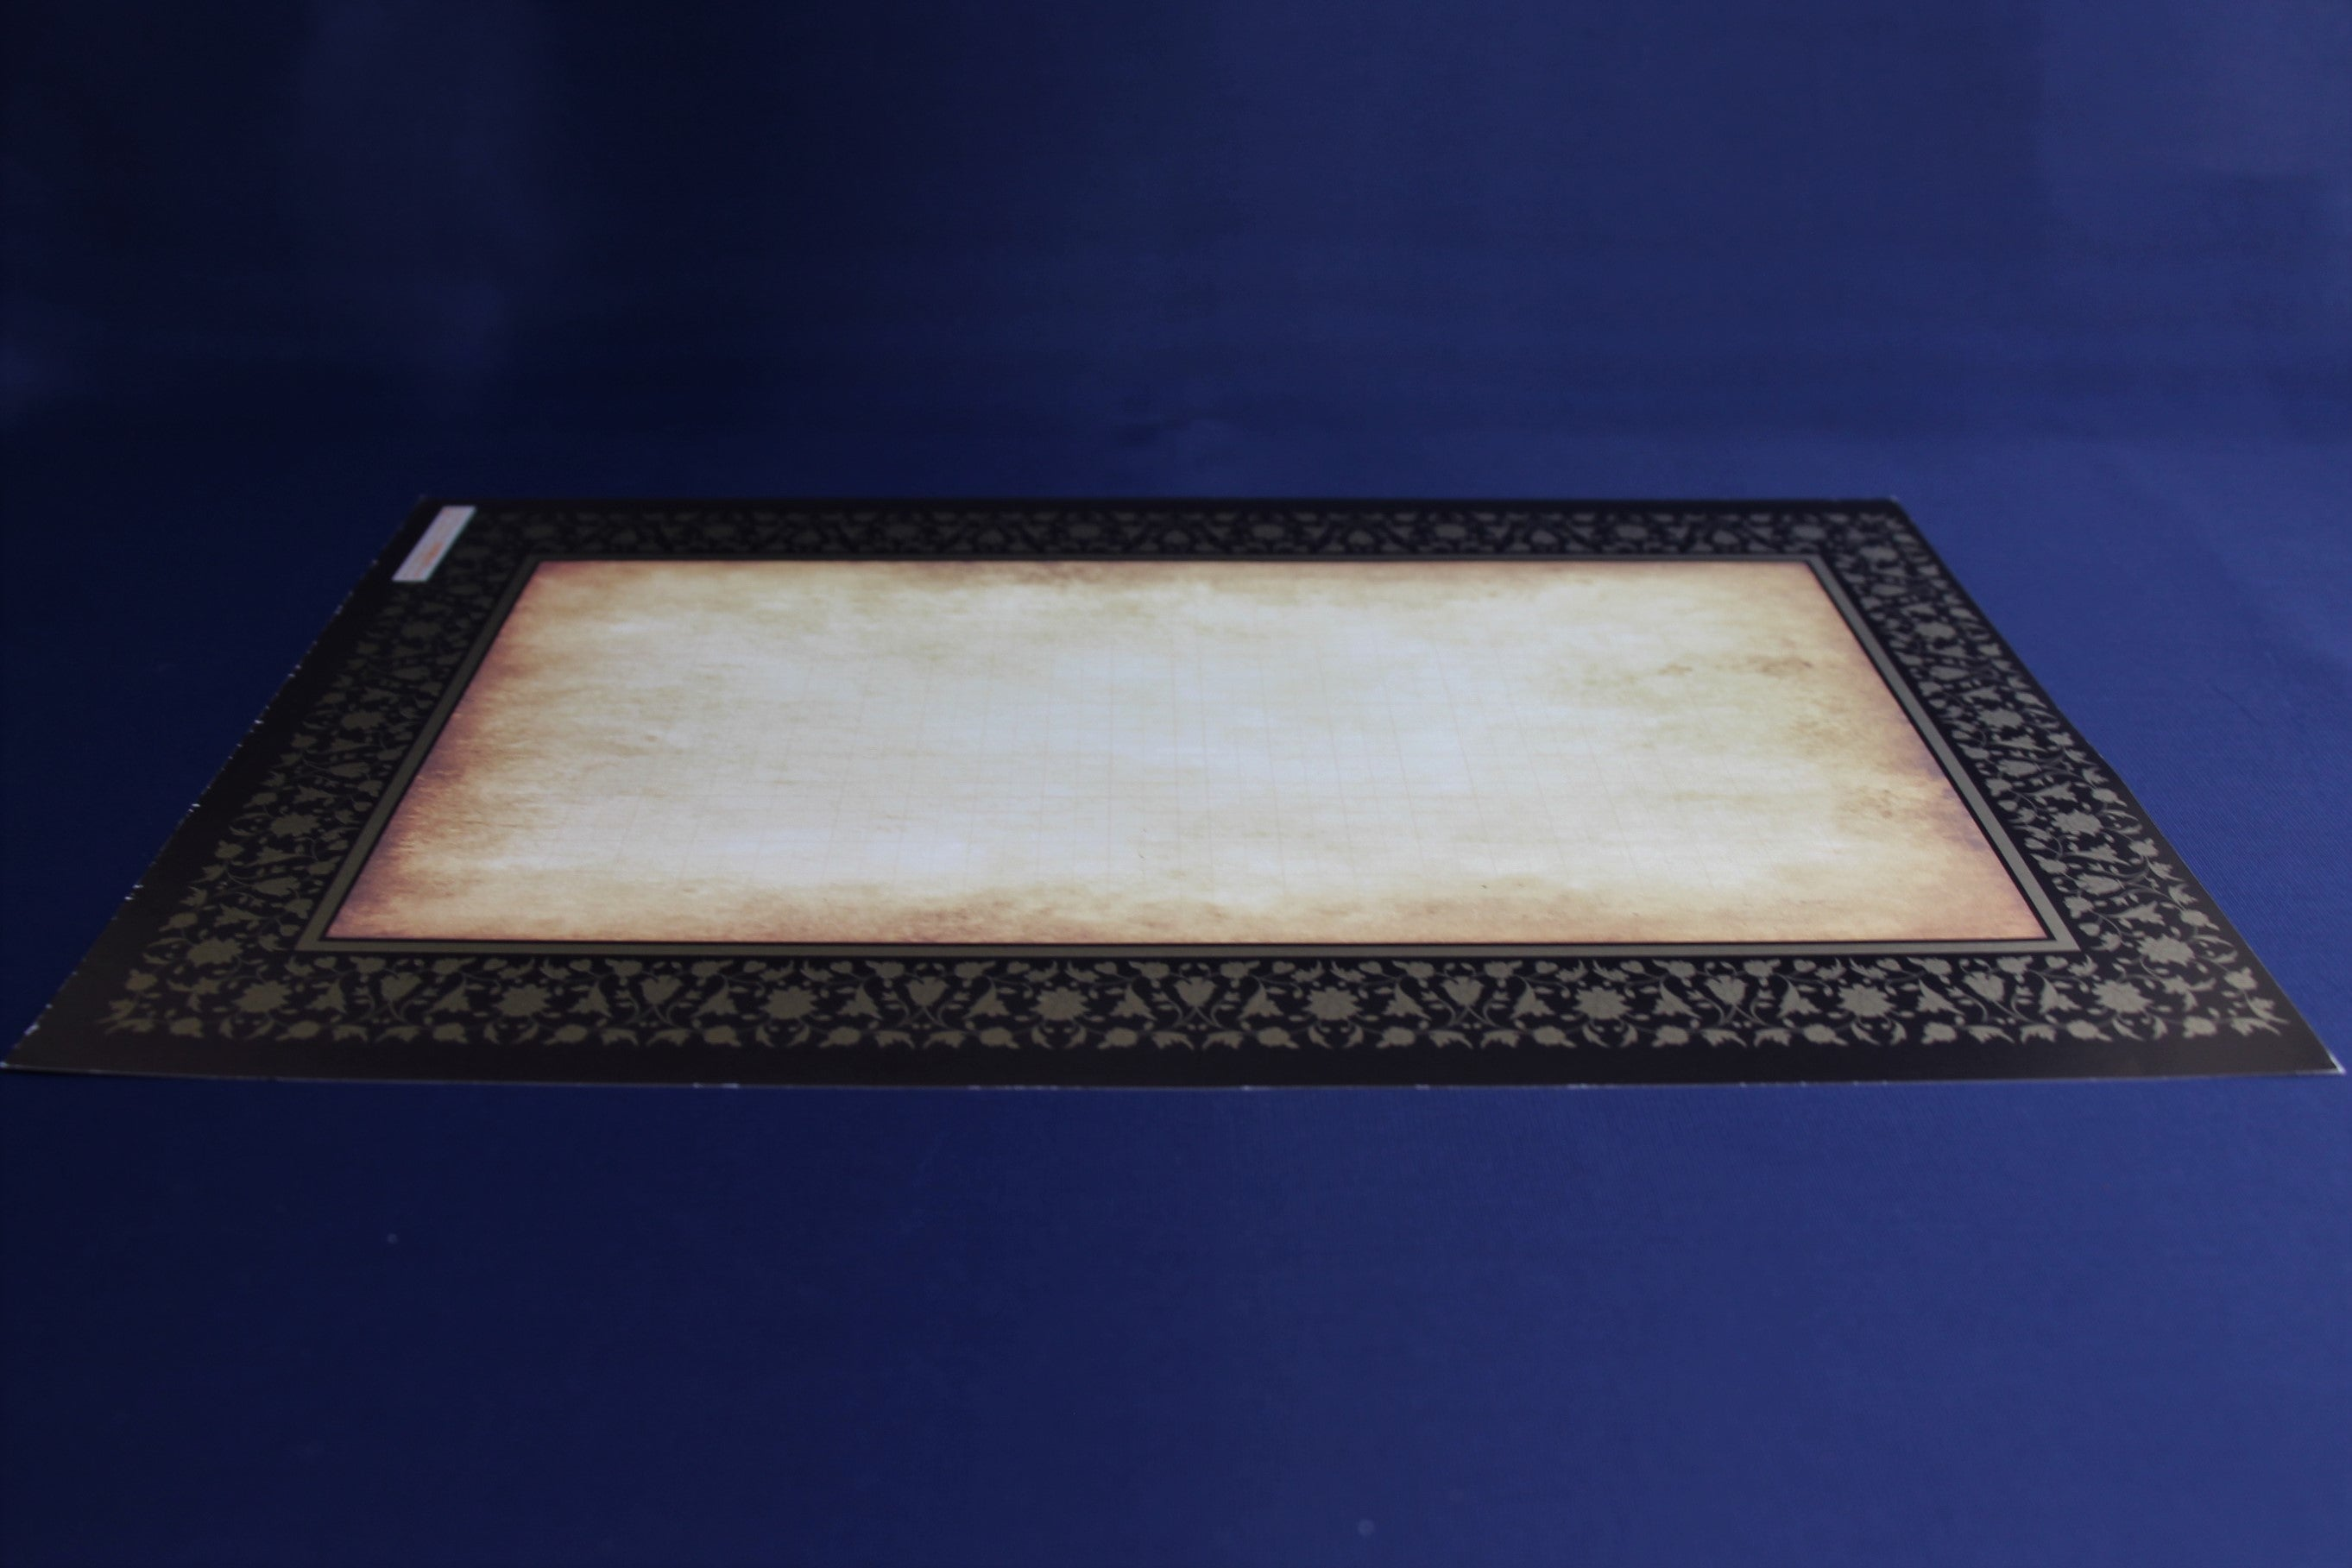 12 sheets of semigloss paper with black and gold decorated border